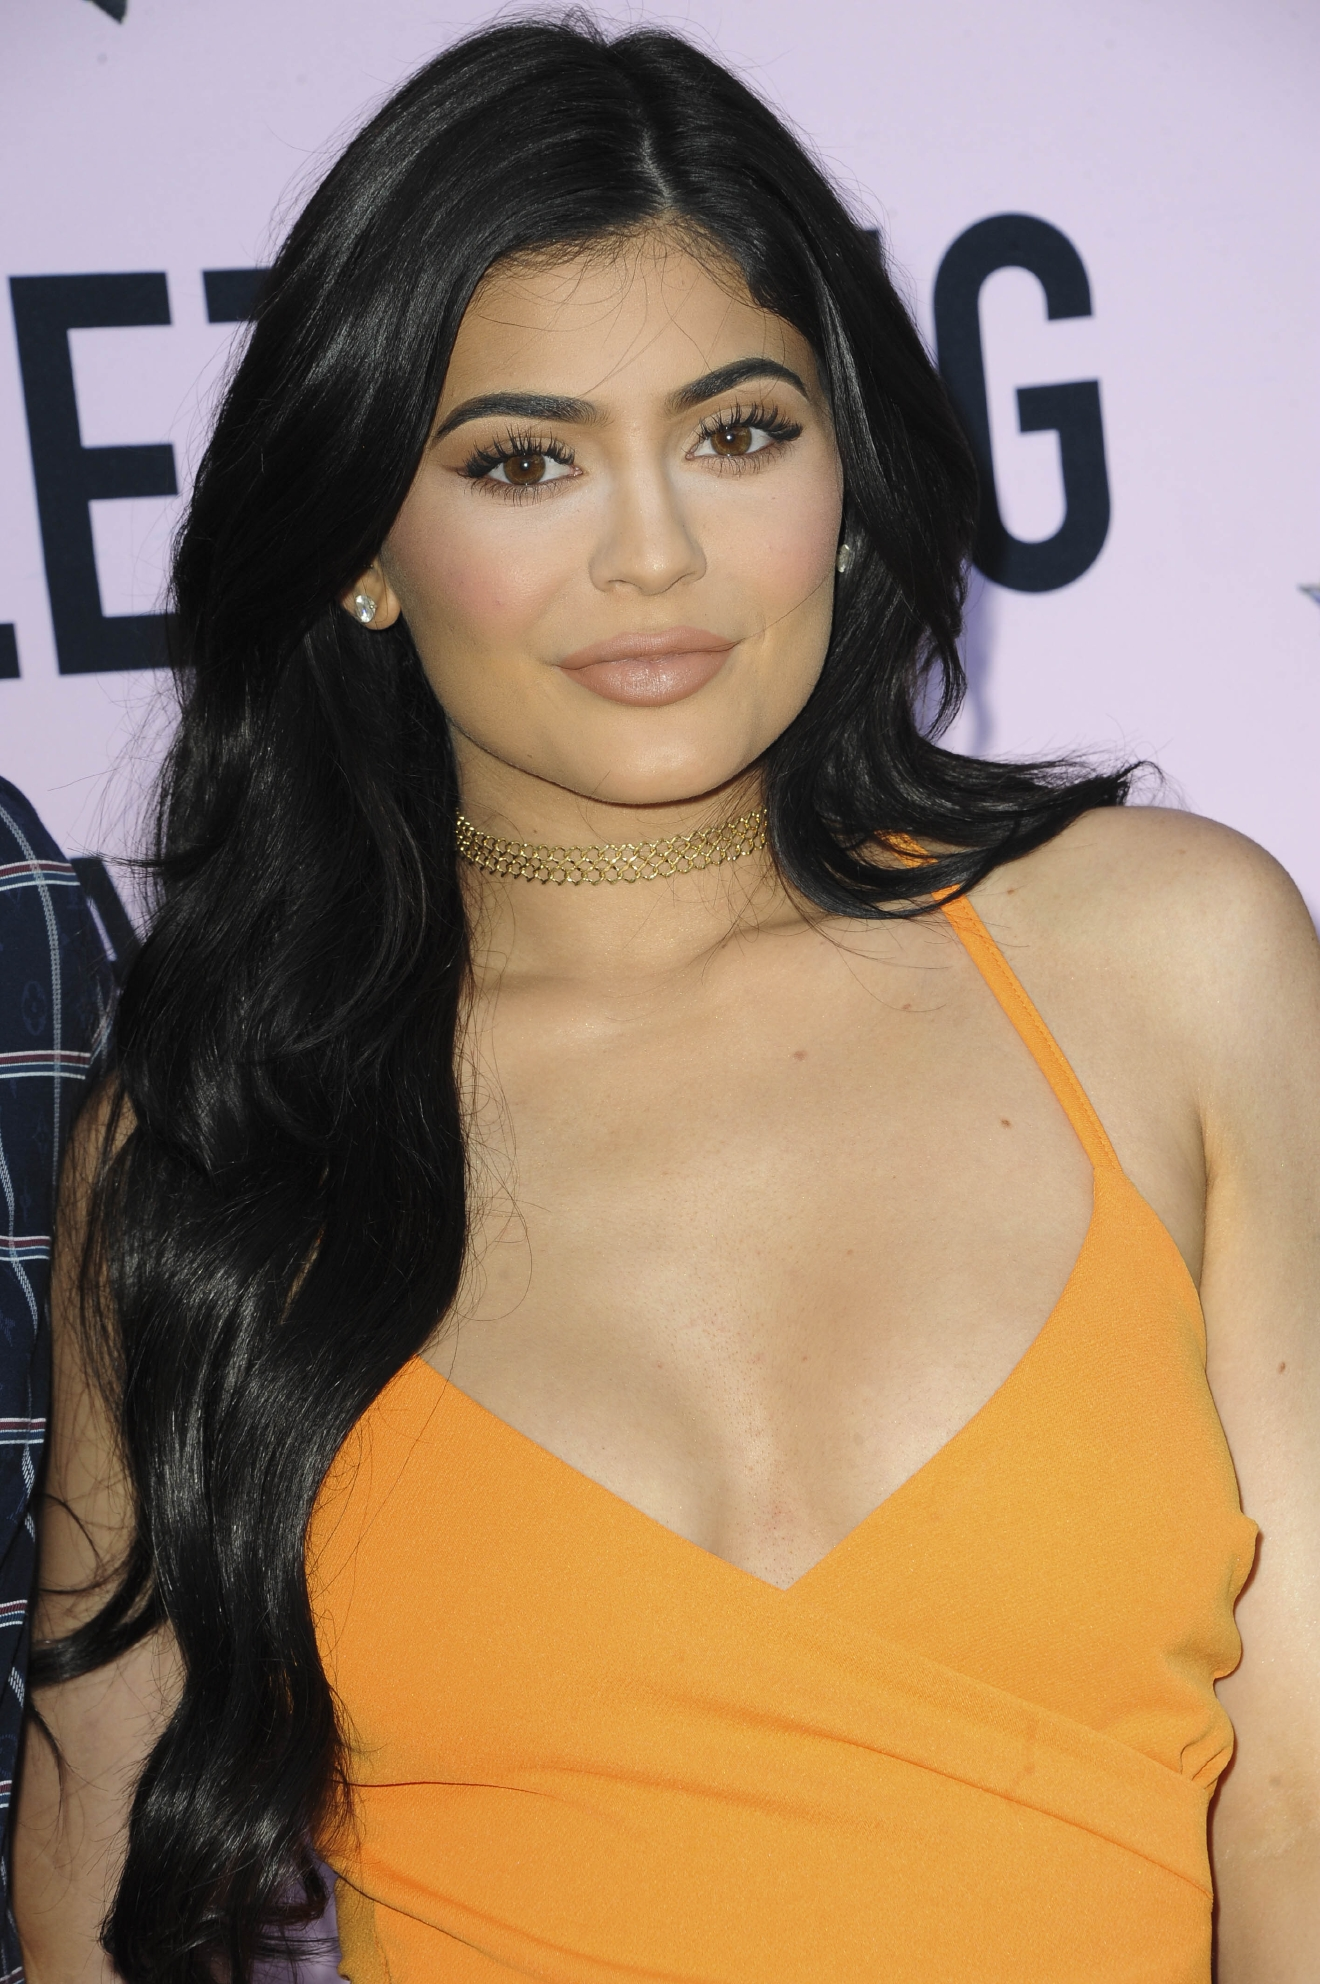 PrettyLittleThing Launch Party                                                                      Featuring: Kylie Jenner                                   Where: Los Angeles, California, United States                                   When: 07 Jul 2016                                   Credit: Apega/WENN.com